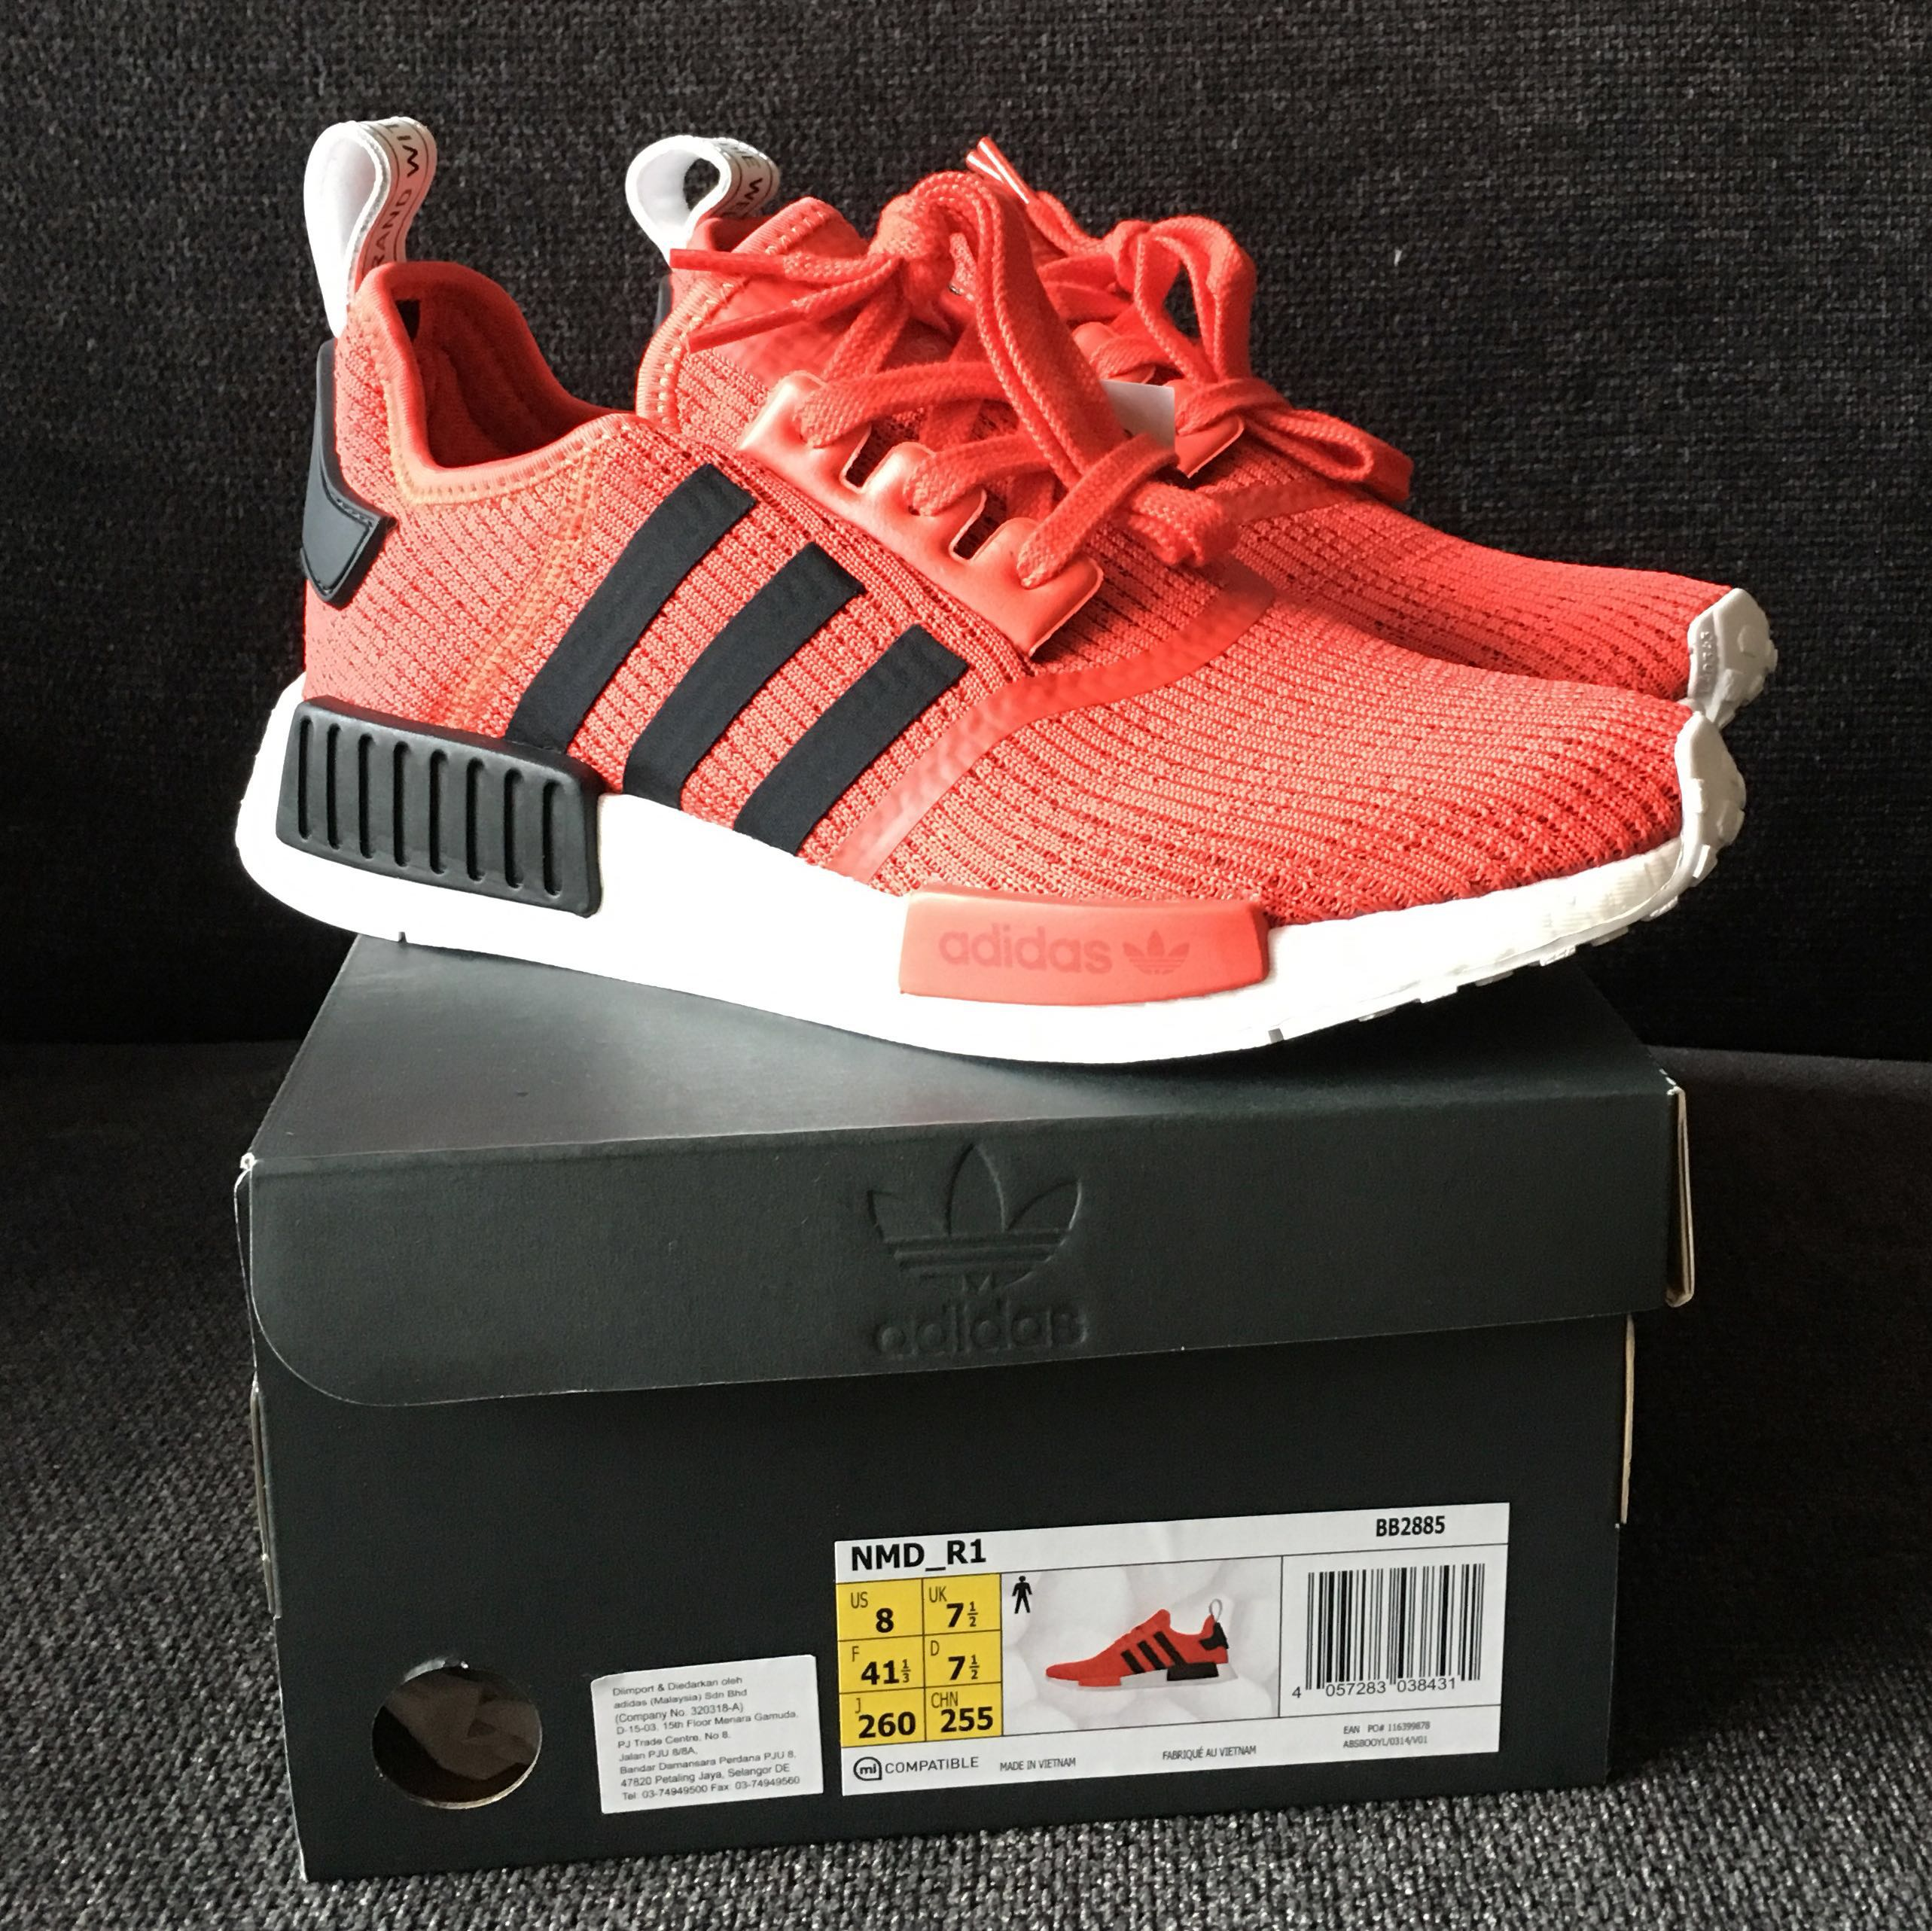 aa2796bb92614 Nego Adidas NMD R1 Red Black 7.5